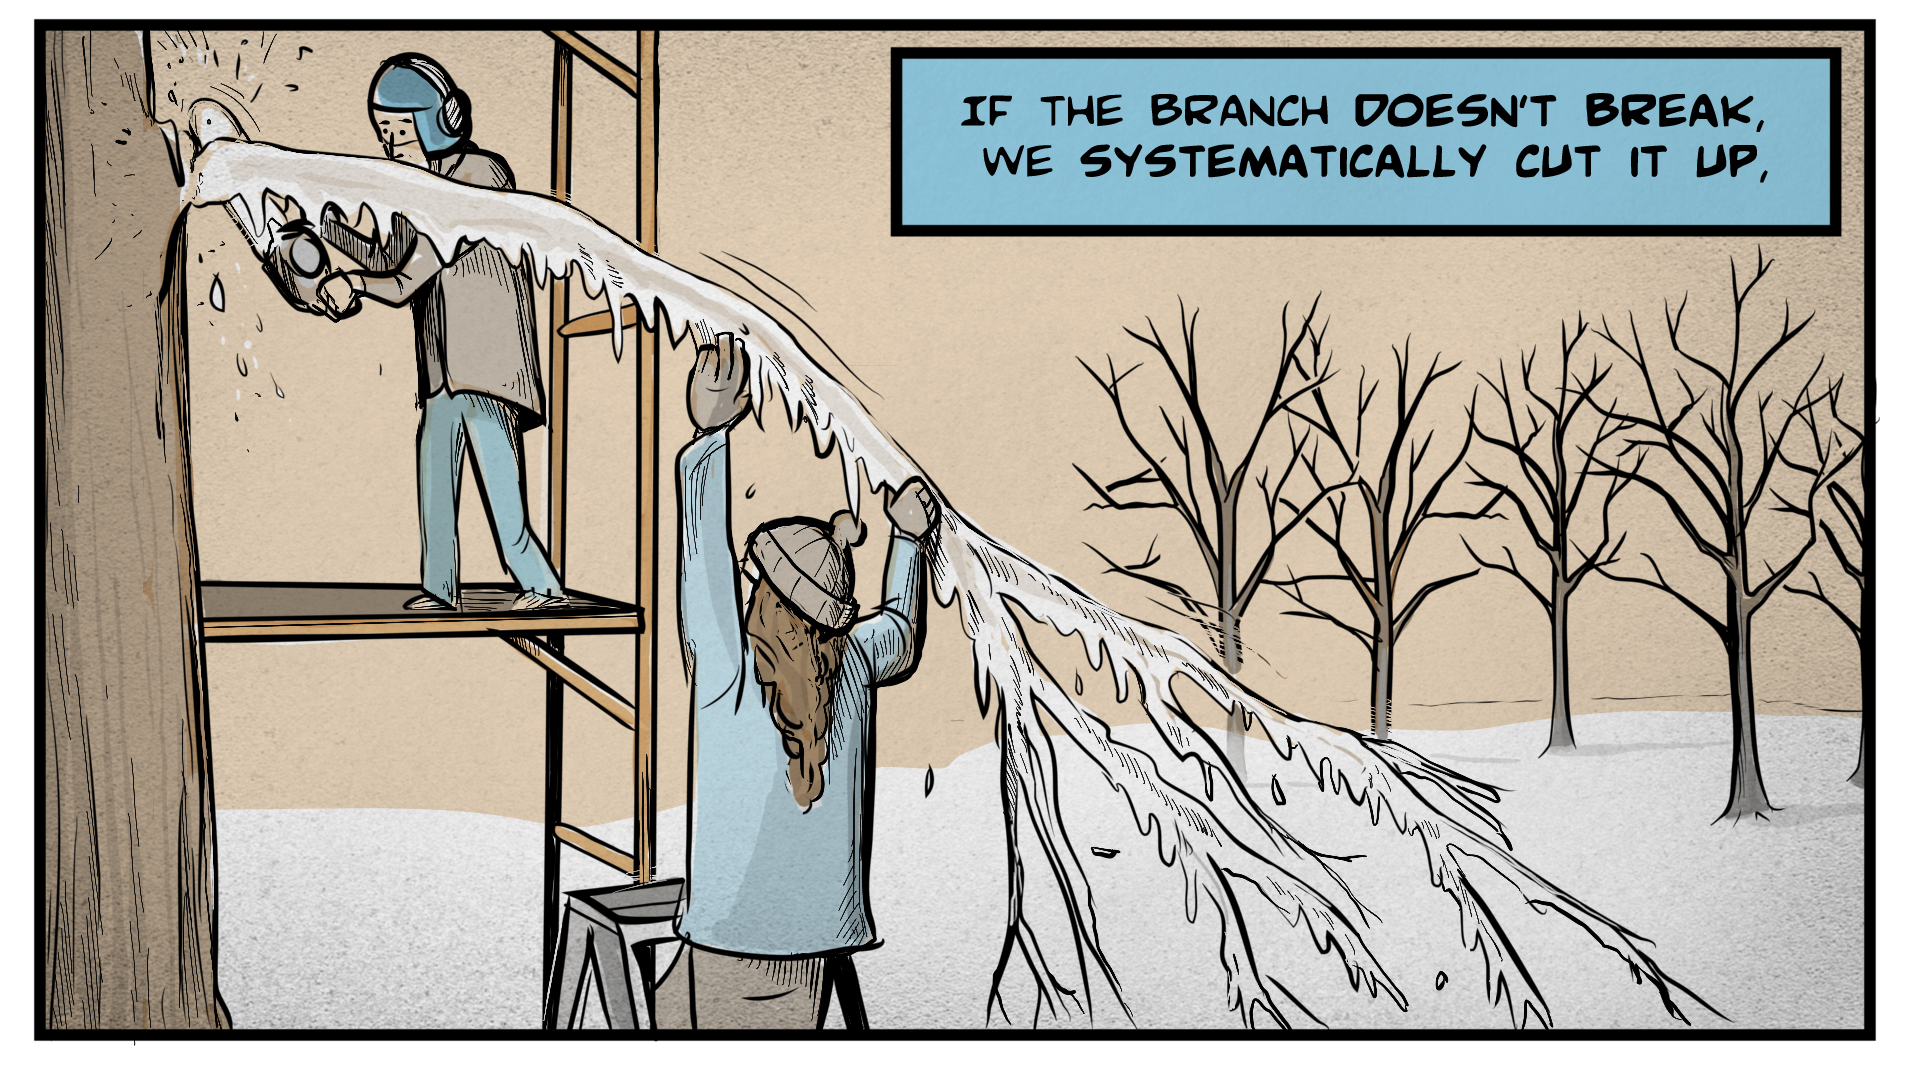 """Danny, the narrator, says, """"If the branch doesn't break, we systematically cut it up."""" Danny stands on a scaffolding using a chainsaw to cut down the snow-and-ice-covered tree branch. A woman in a winter hat stands on the ground and keeps the branch from falling."""